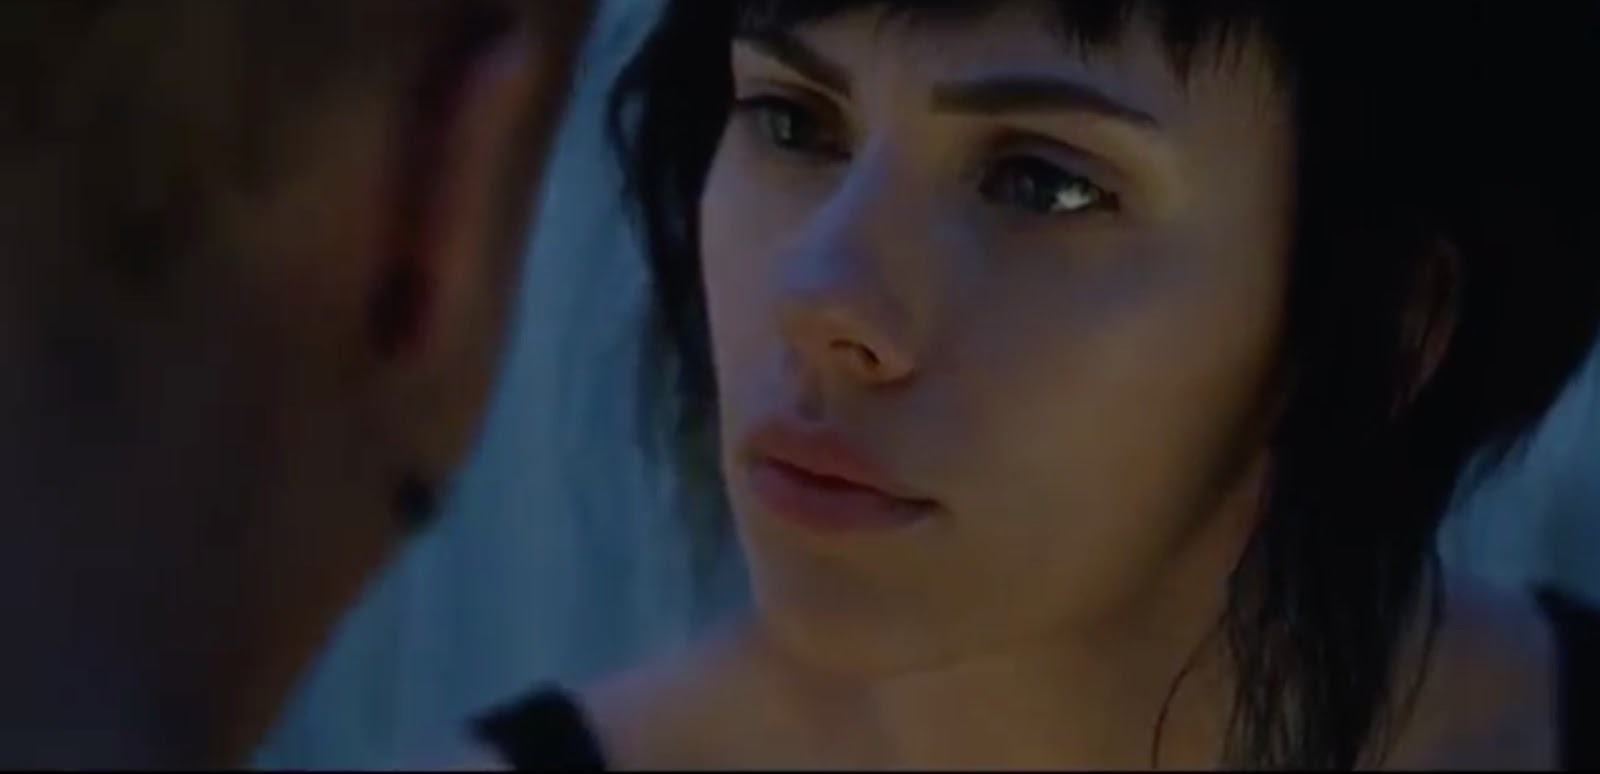 scarlett_johansson-ghost_in_the_shell-screen_shot-007